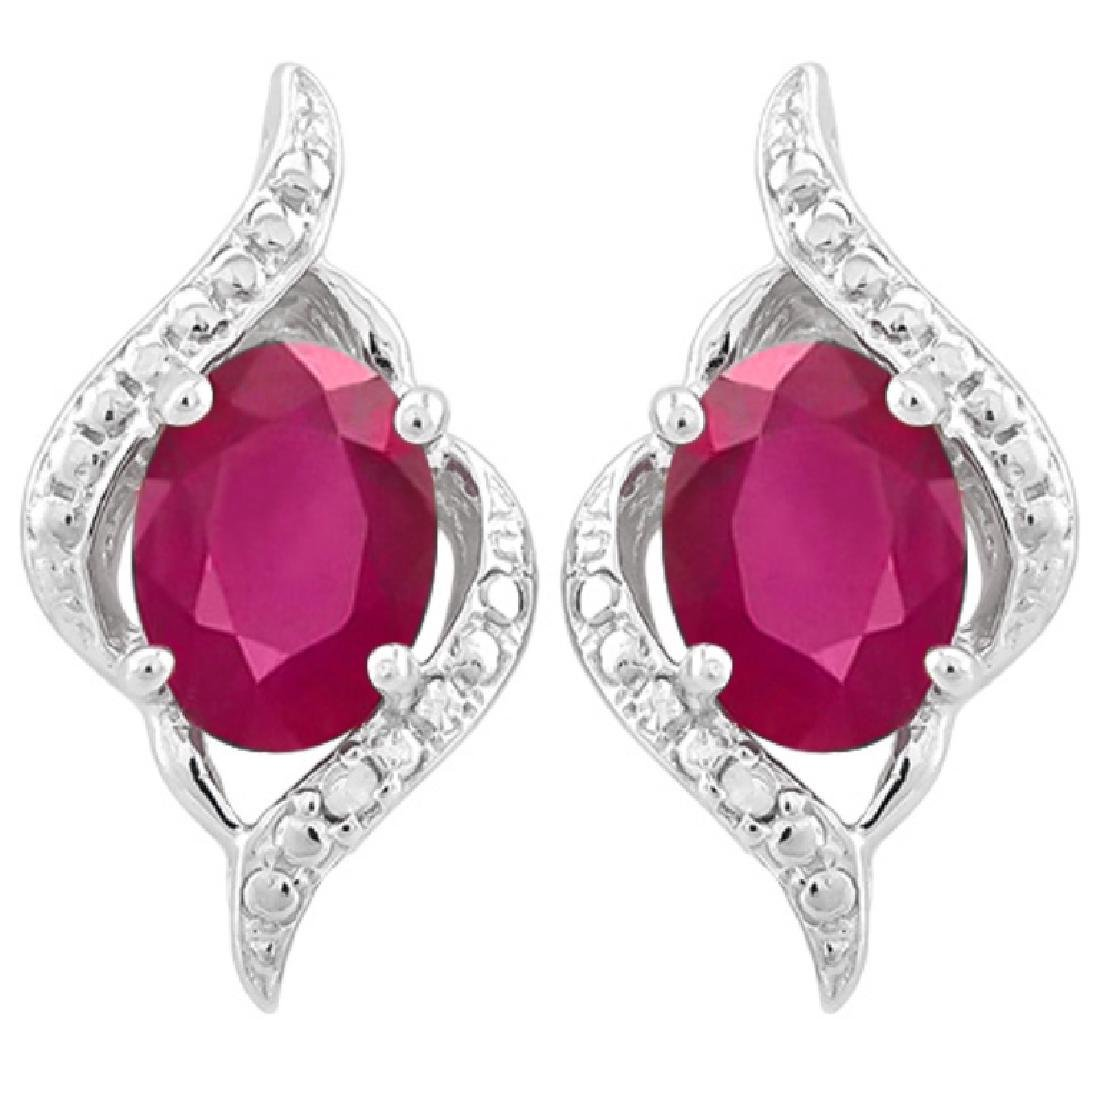 AMAZING 2CT AFRICAN RUBY OVAL ACCENT EARRINGS